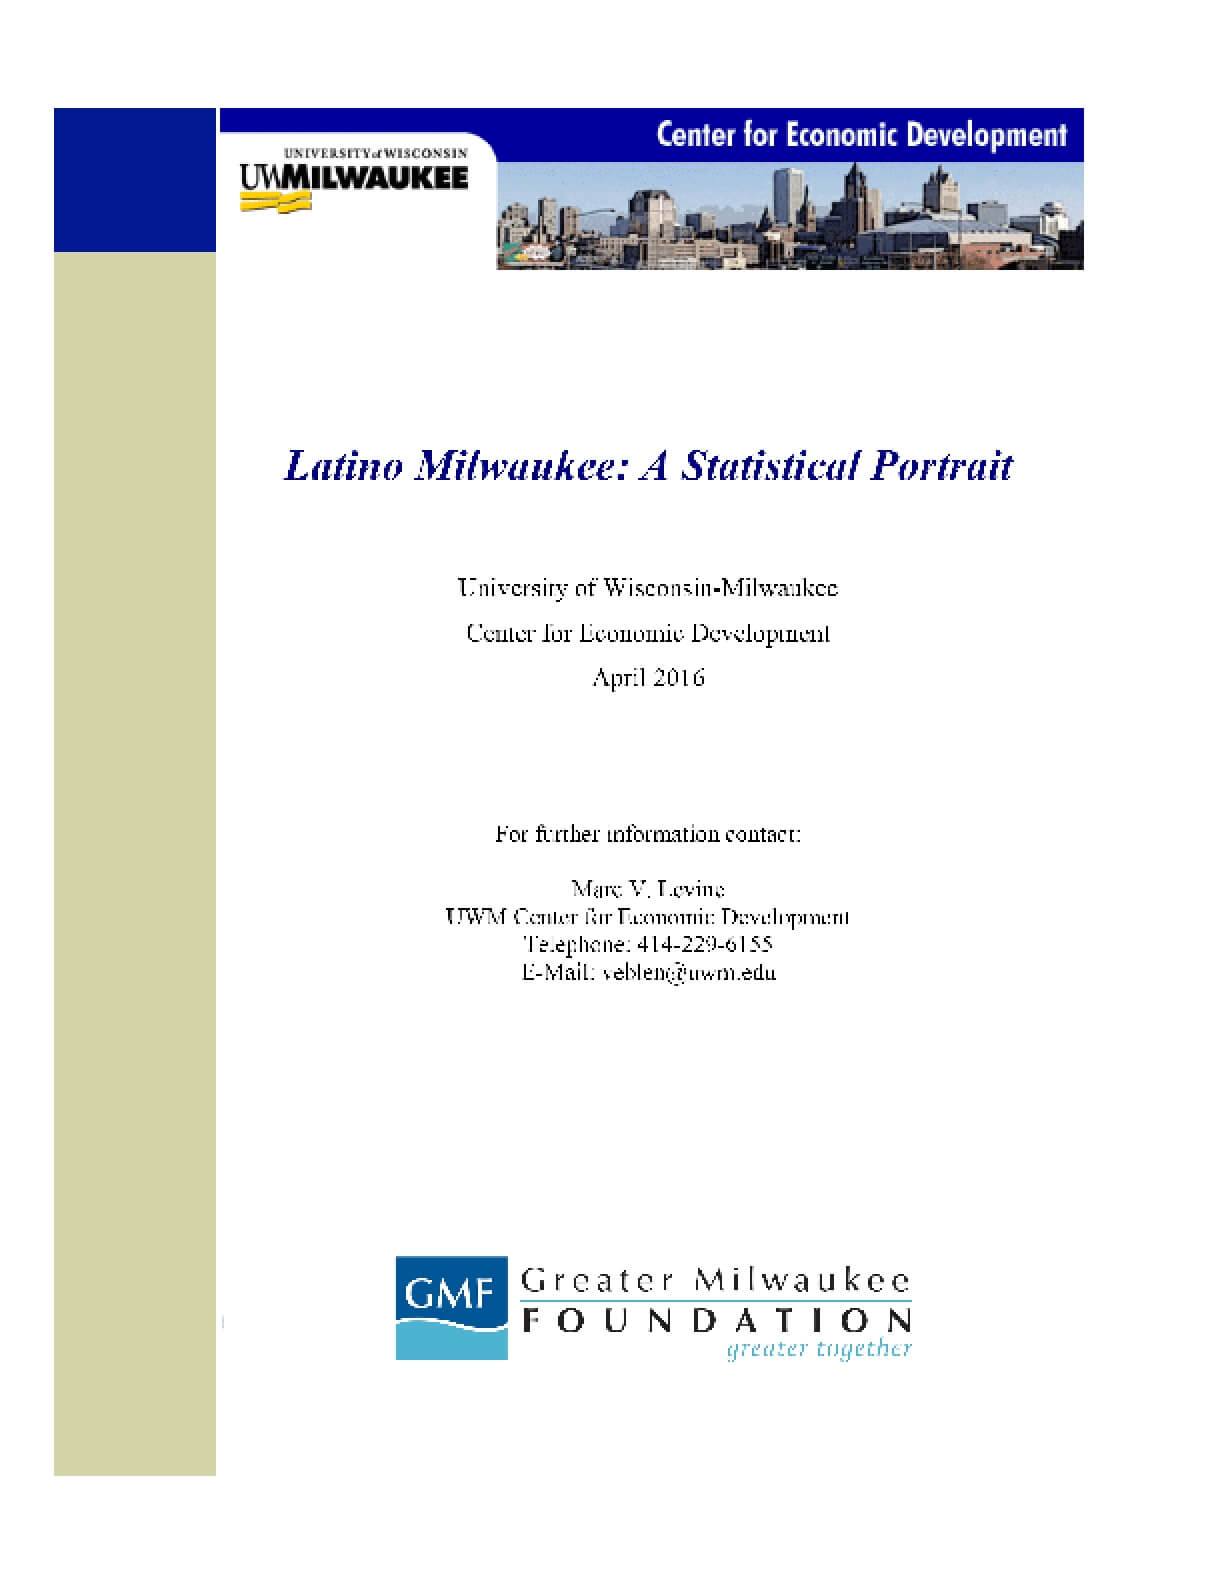 Latino Milwaukee: A Statistical Portrait